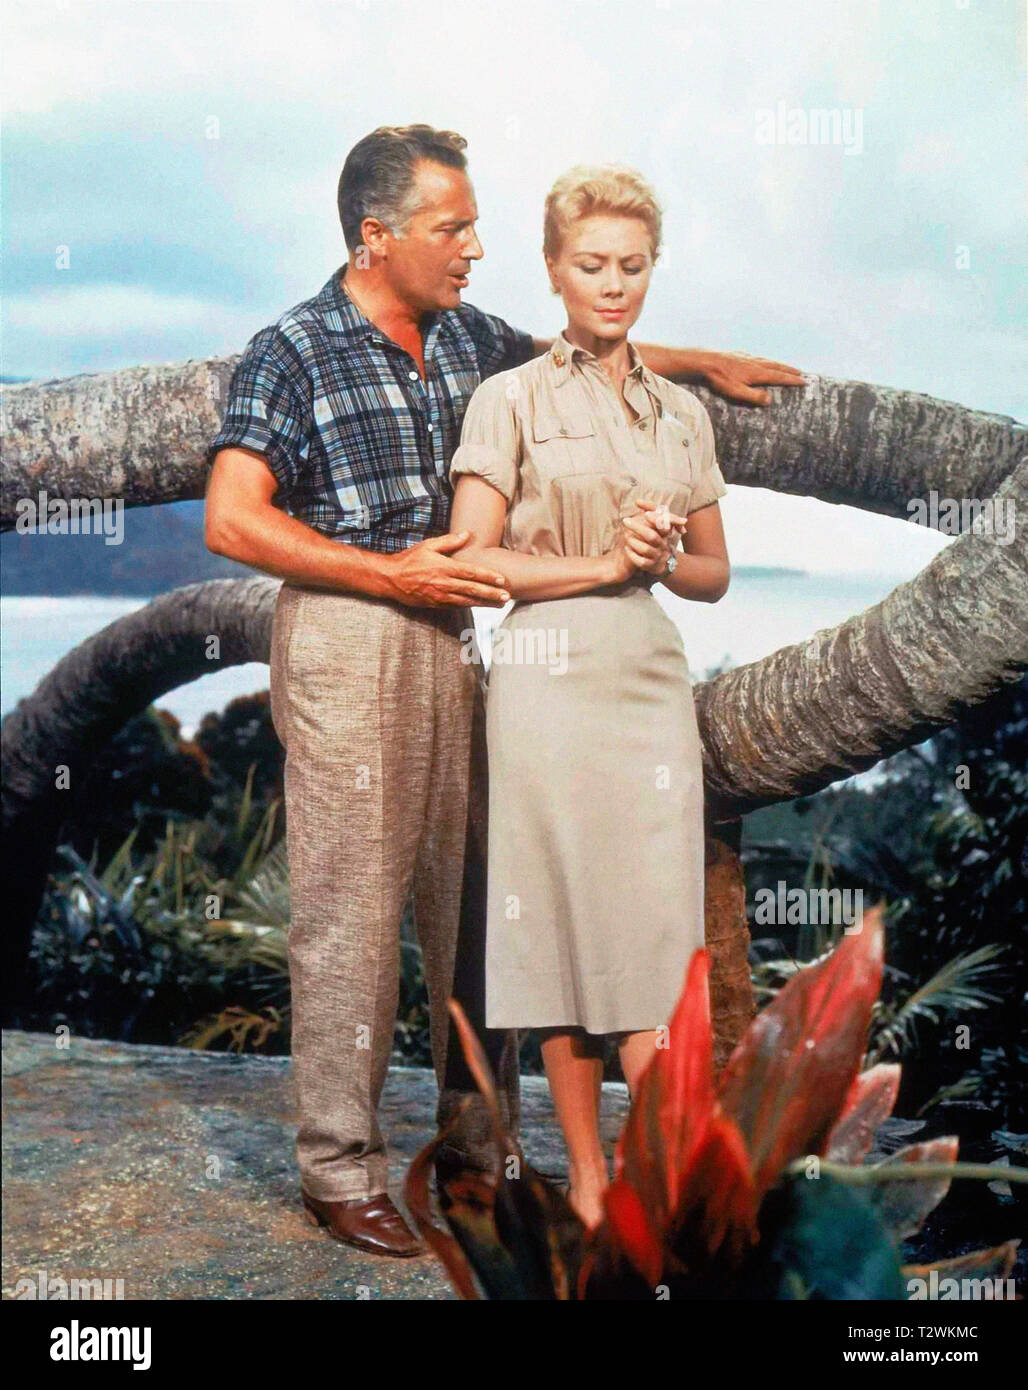 "SOUTH PACIFIC 1958 de Joshua Logan Rossano Brazzi Mitzi Gaynor. d'apres le roman de James Michener ""Tales of the South Pacific"" based on the novel ""Ta Stock Photo"